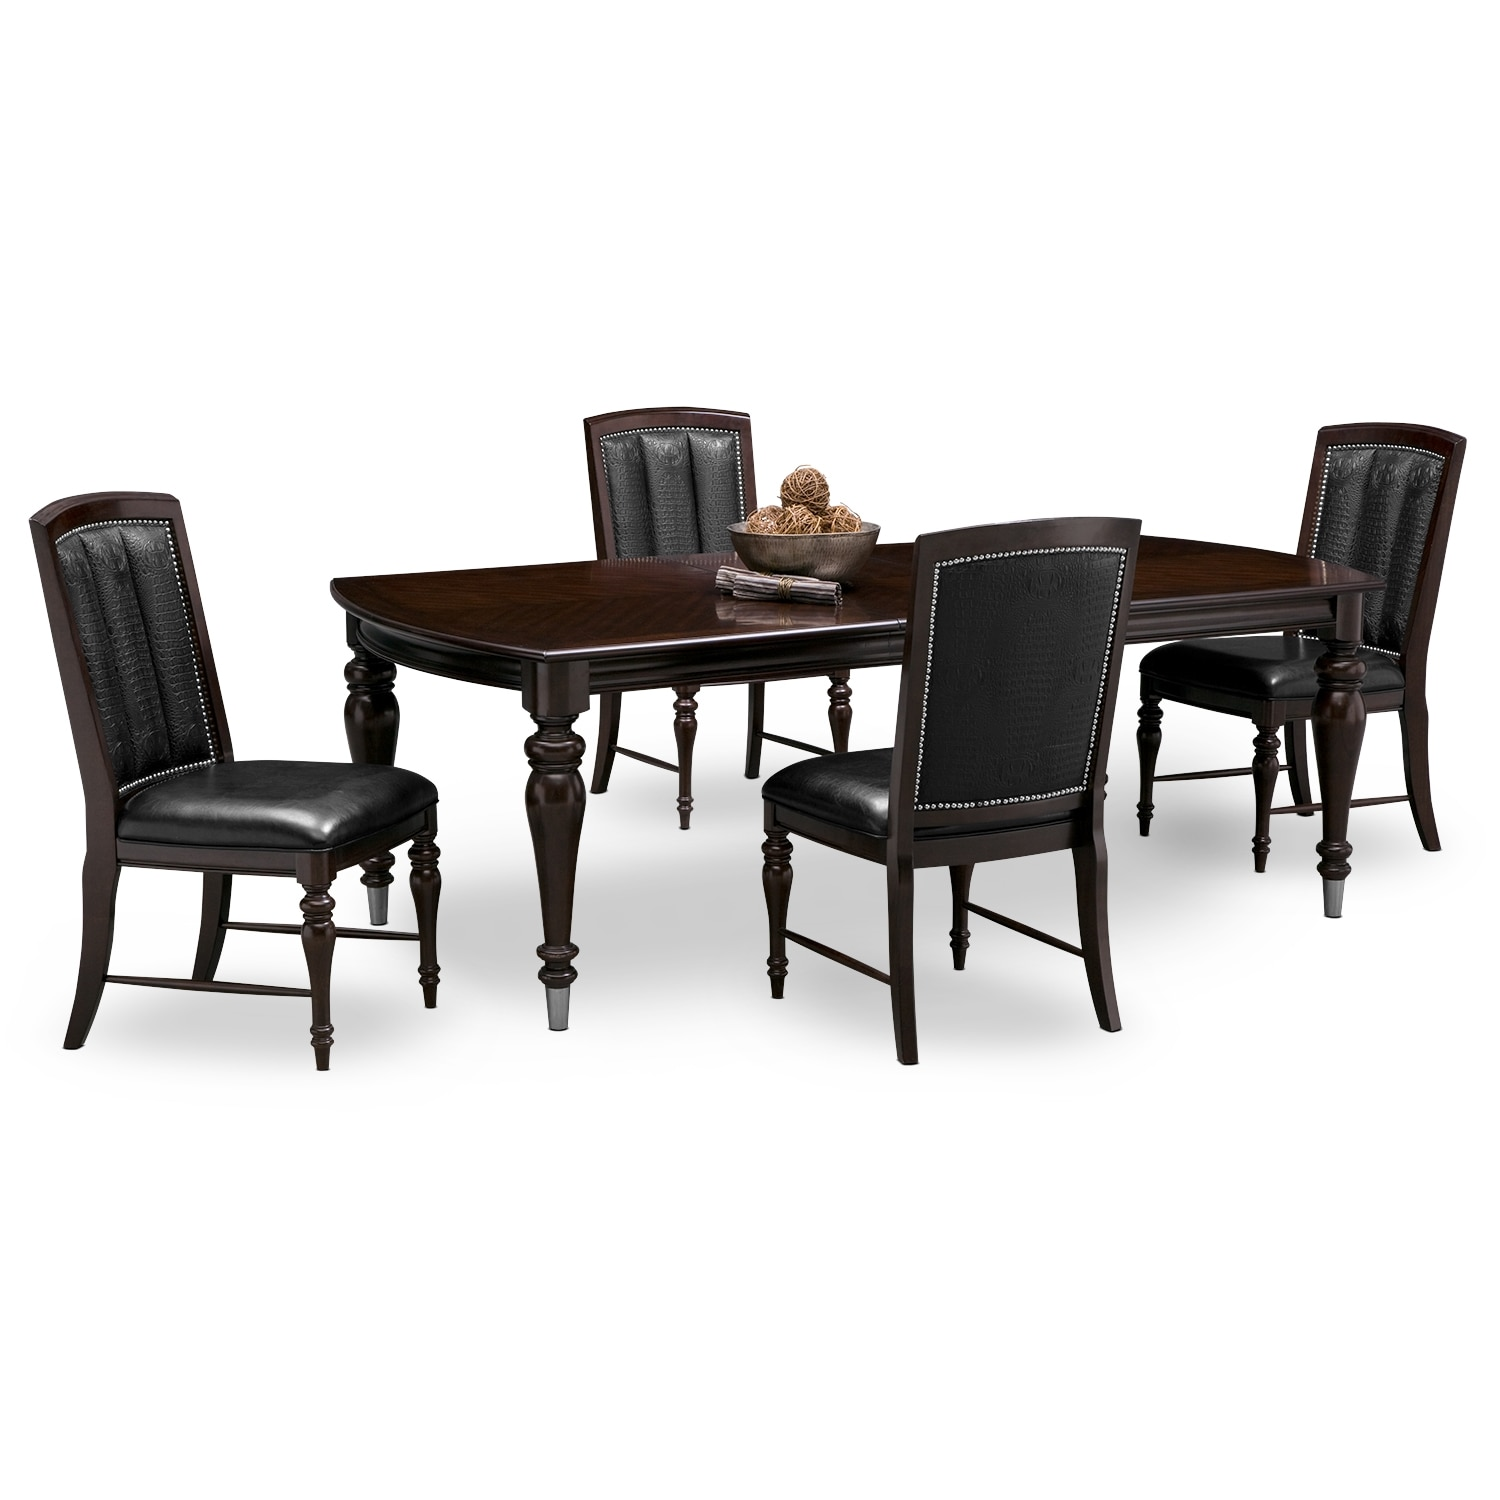 Esquire Table And 4 Chairs   Cherry